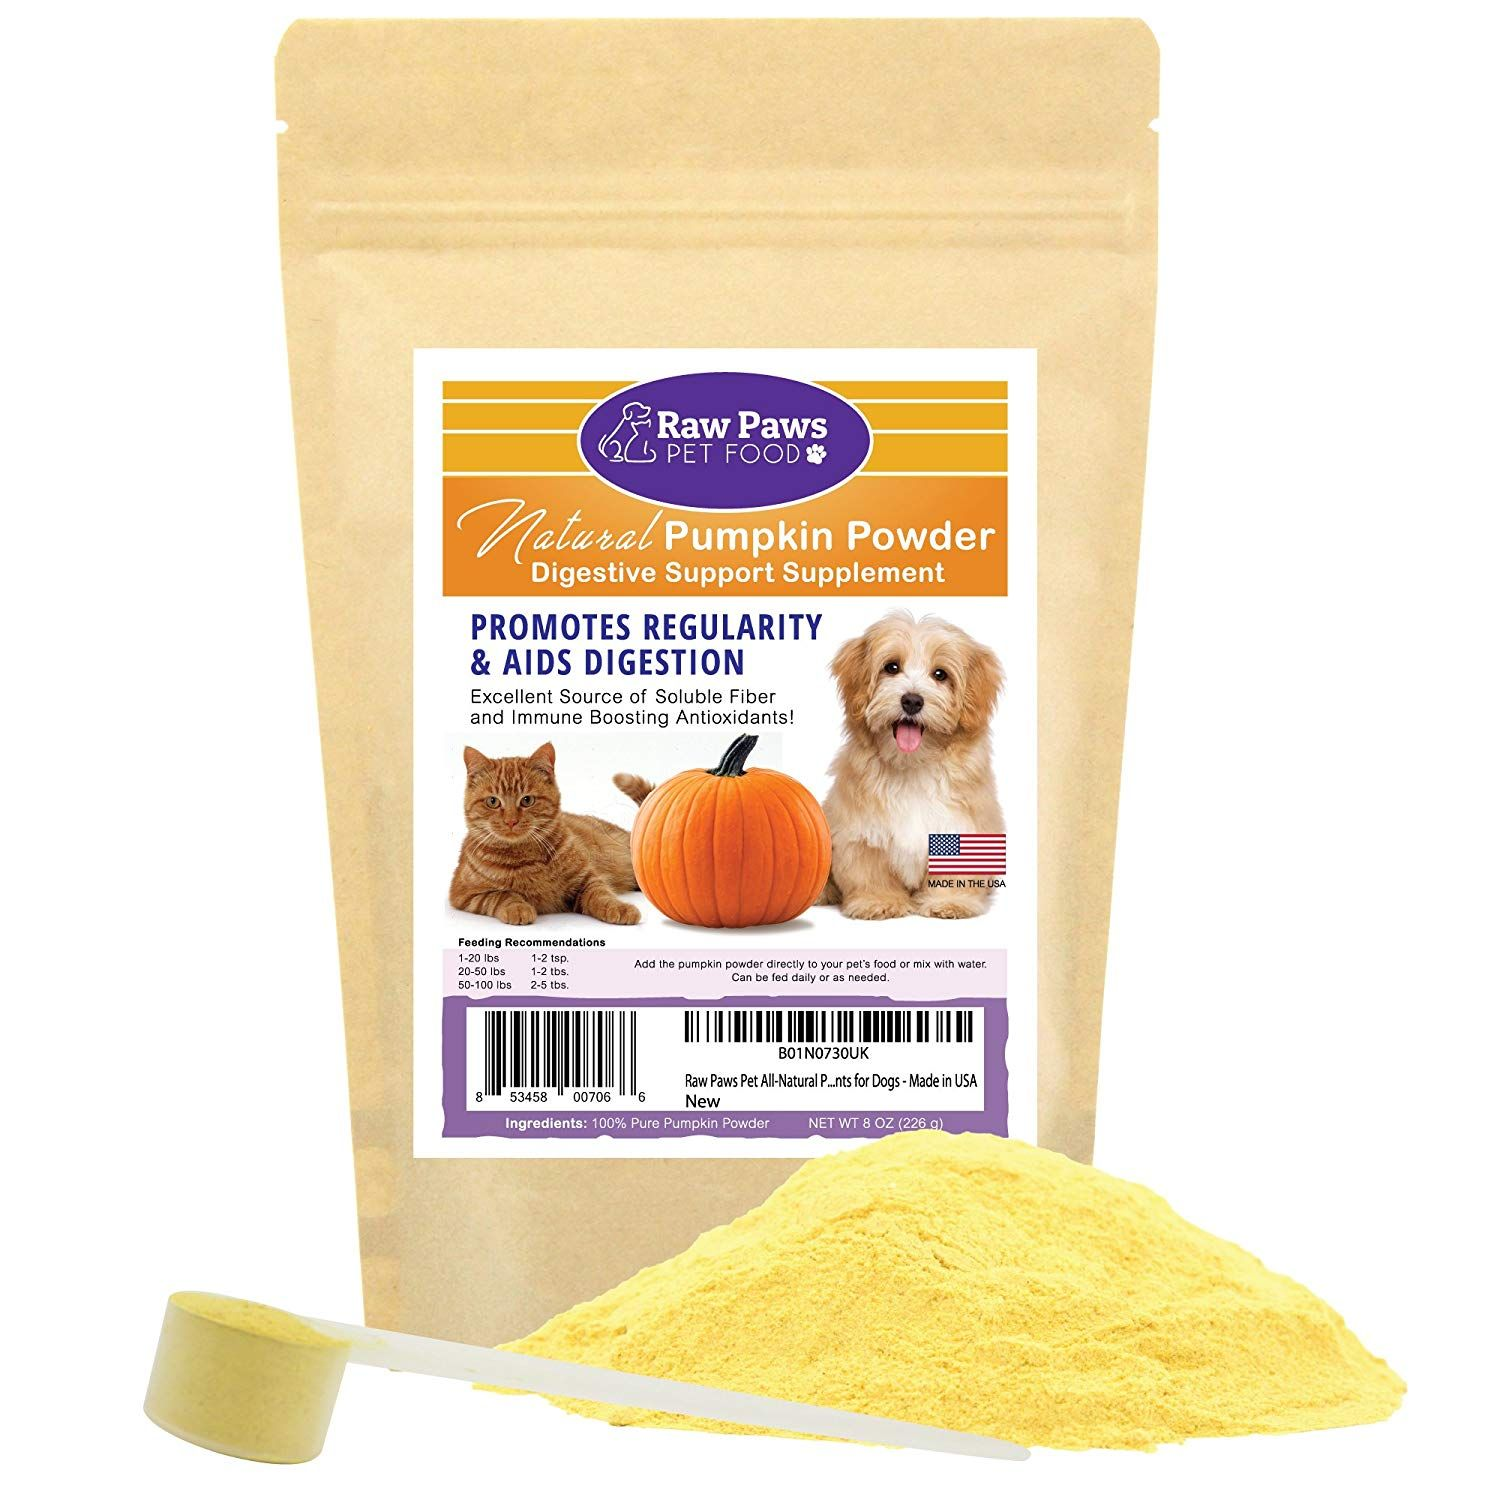 Raw Paws Pet Natural Pumpkin Powder Digestive Supplement For Dogs And Cats Fiber For Dogs Anti Di Digestive Supplements Fiber For Dogs Raw Dog Food Recipes